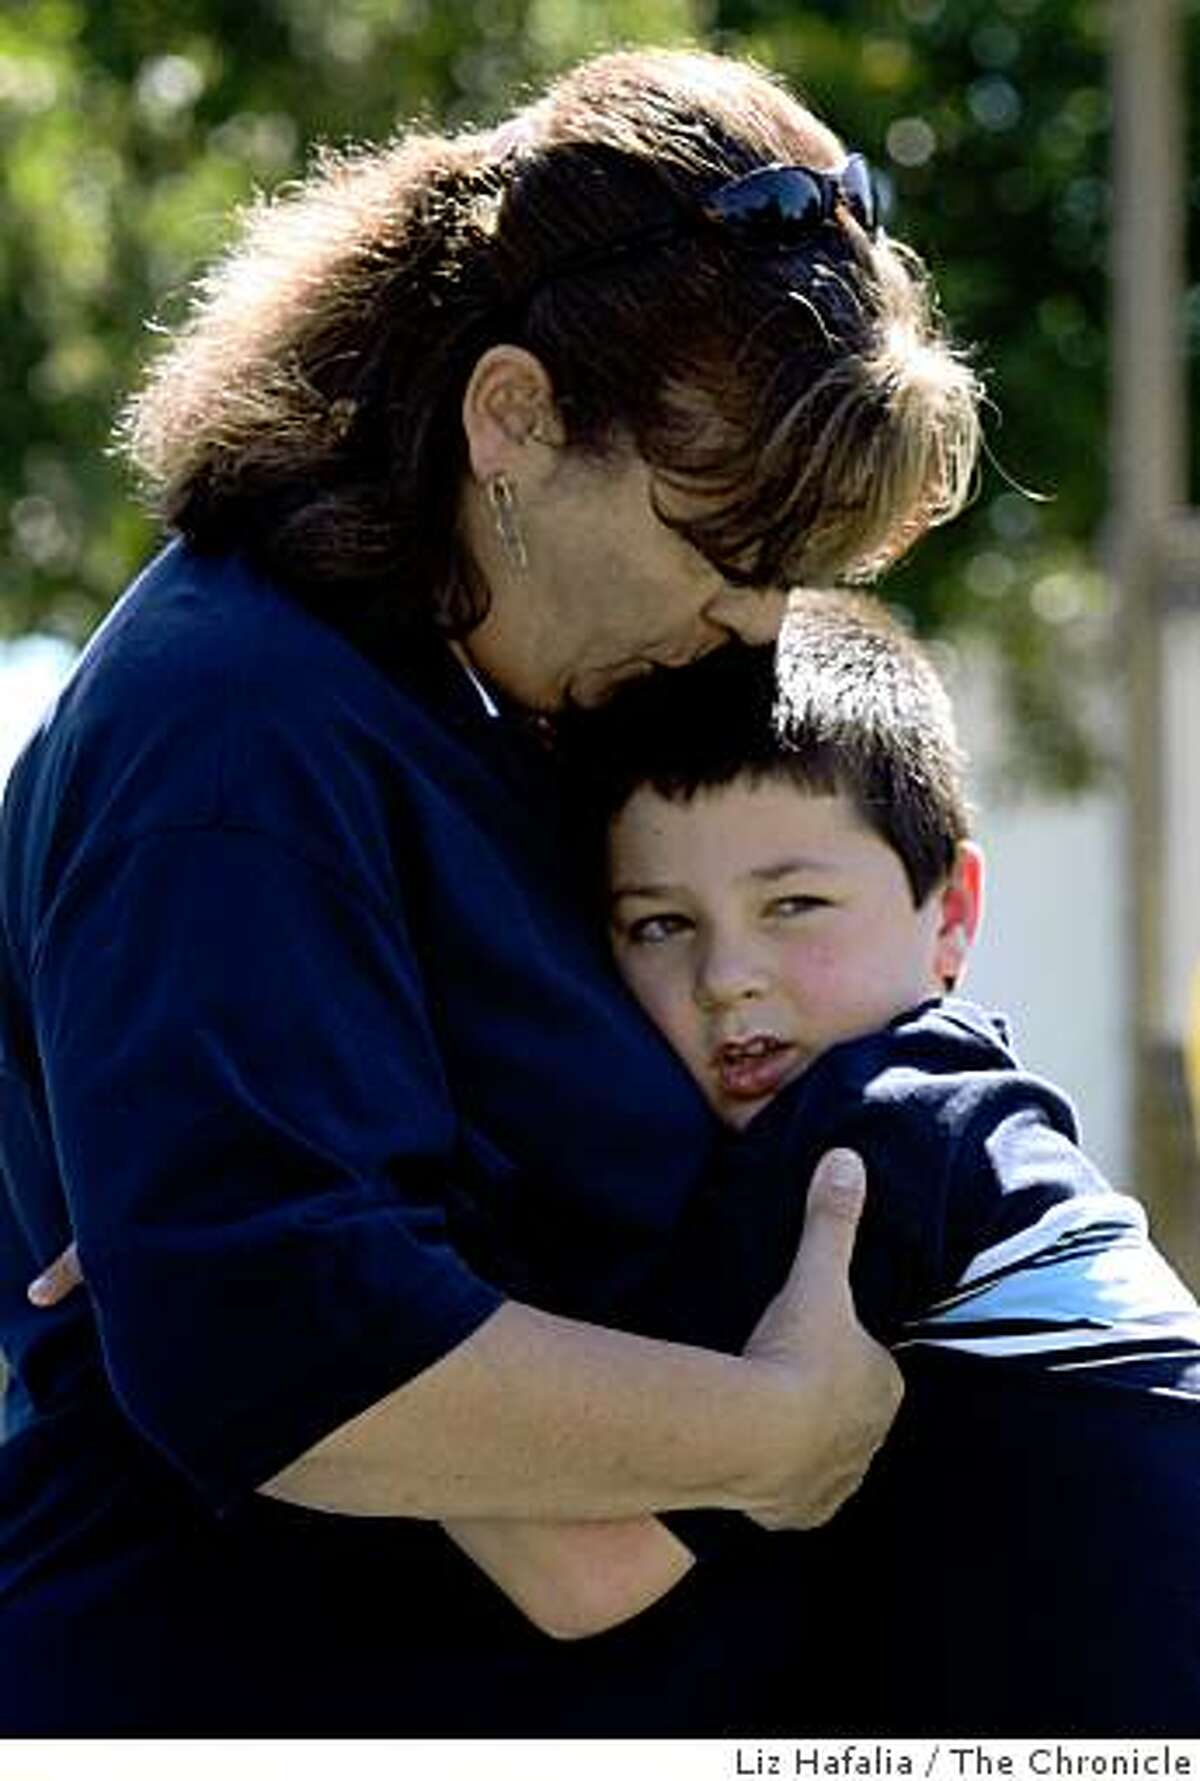 Yuri Malboeuf, a disabled Concord mother, has two children with autism and is at the neighborhood park with her 7 year old son Michael Malboeuf in Concord, Calif., on Friday, August 1, 2008.Photo by Liz Hafalia/The Chronicle